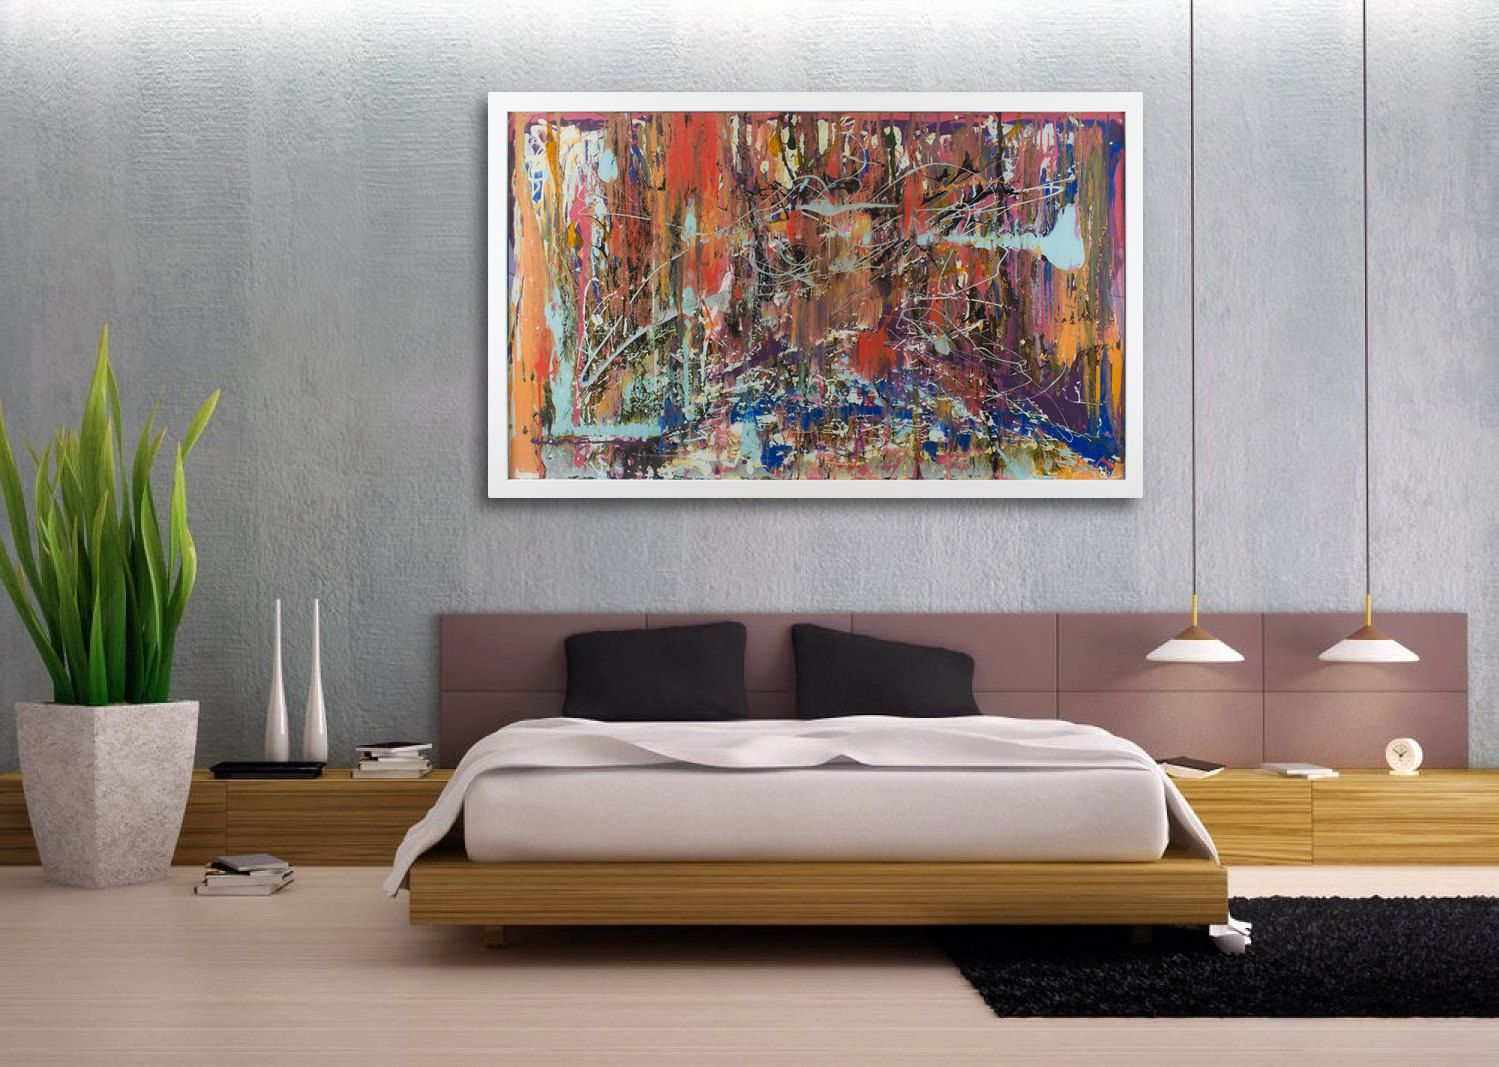 Extra Large Abstract Wall Art With Lighting Extra Large Etsy Modern Wall Decor Large Abstract Wall Art Room Wall Decor